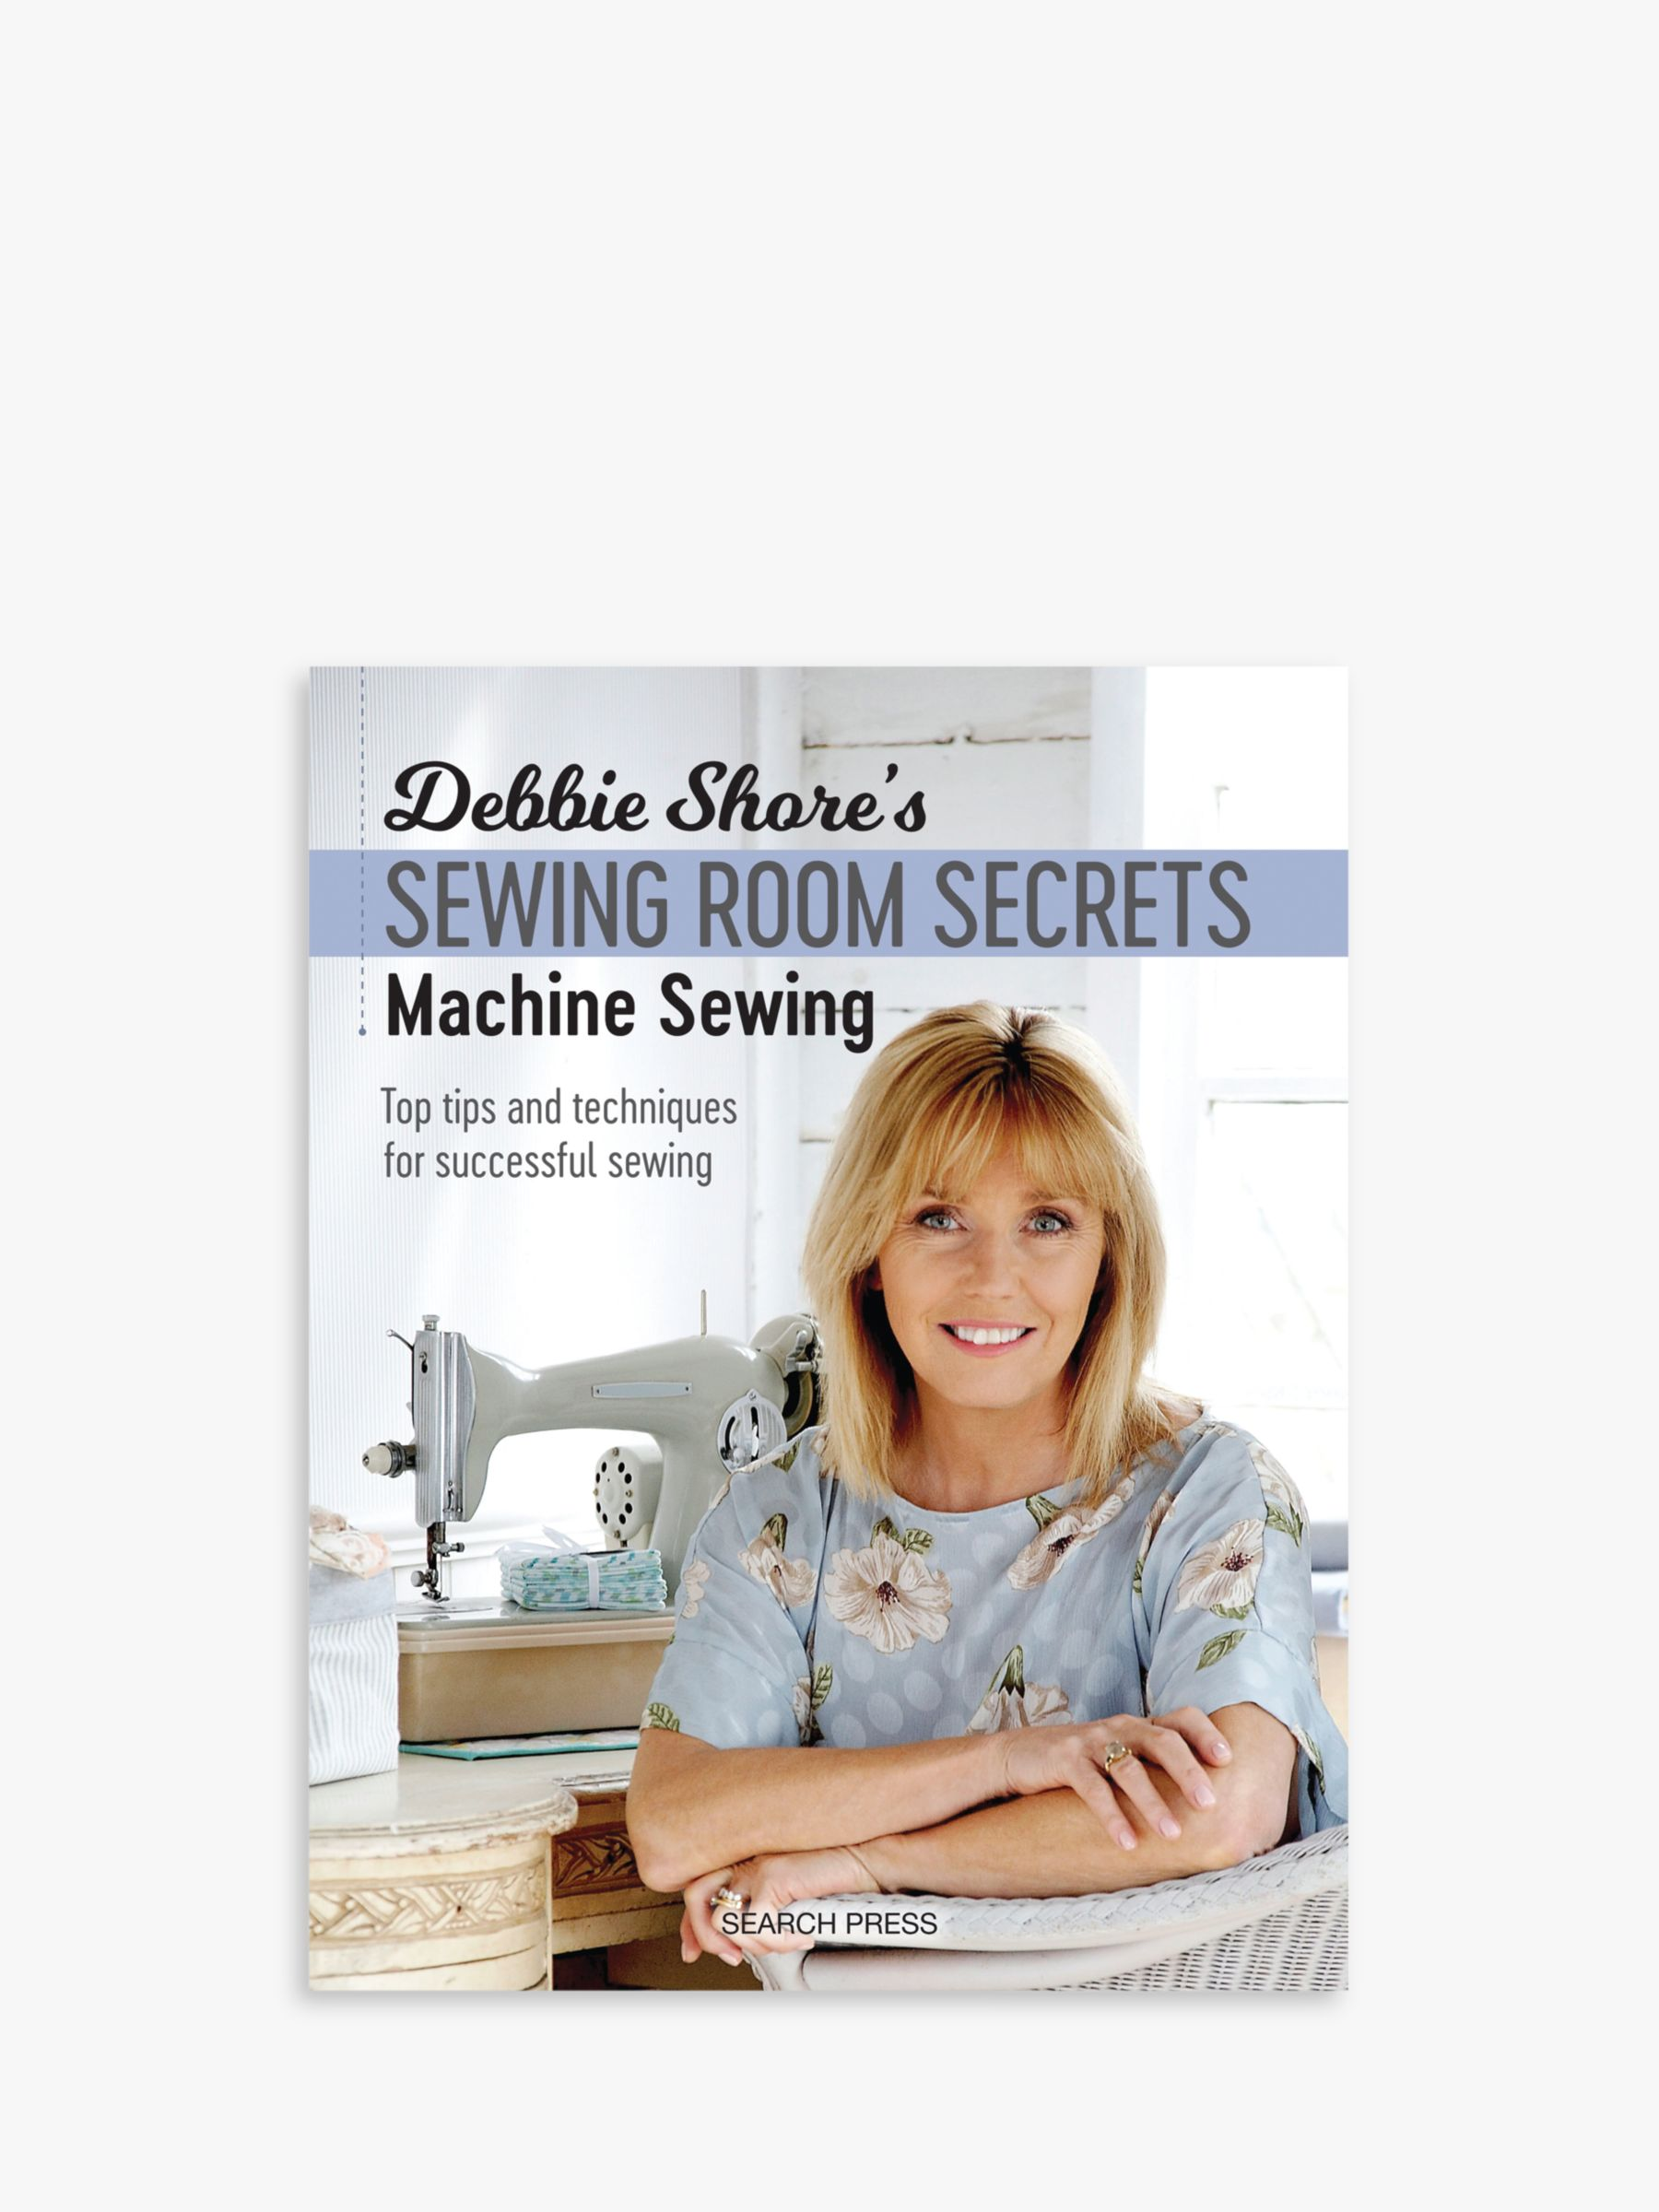 Search Press Search Press Half Yard Home and Sewing Room Secrets by Debbie Shore Book Bundle